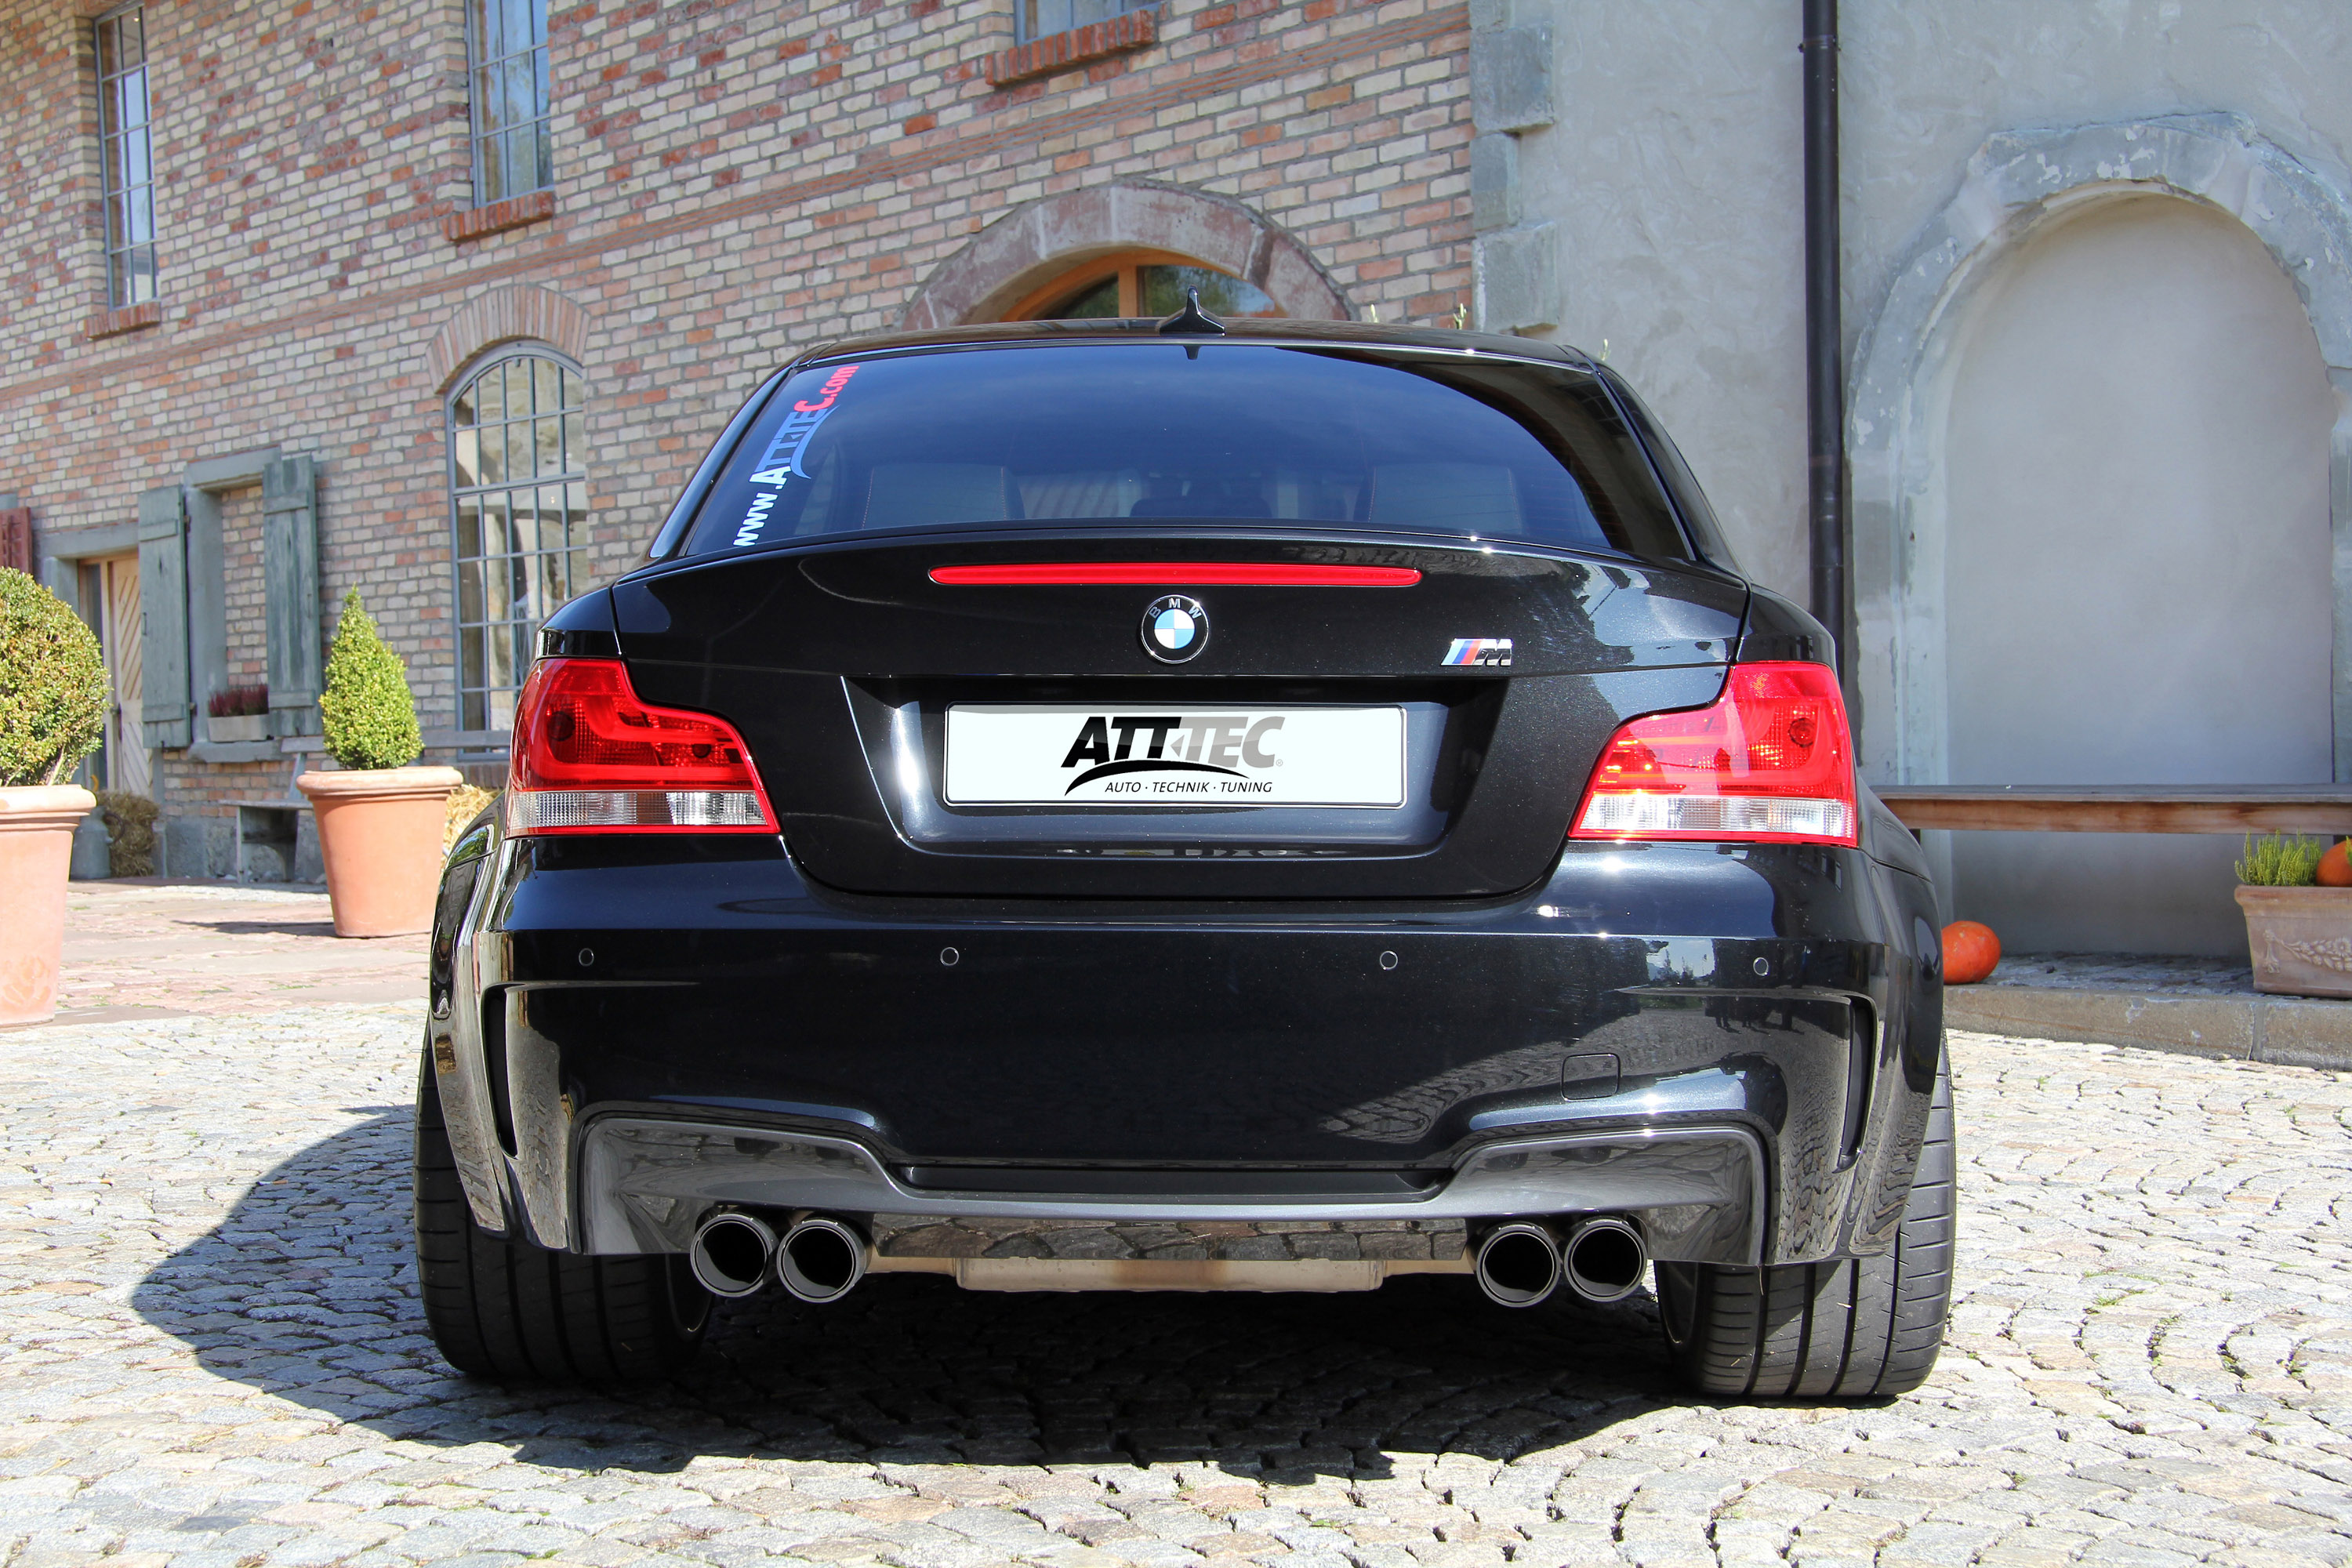 att tec bmw 1 series m coupe. Black Bedroom Furniture Sets. Home Design Ideas